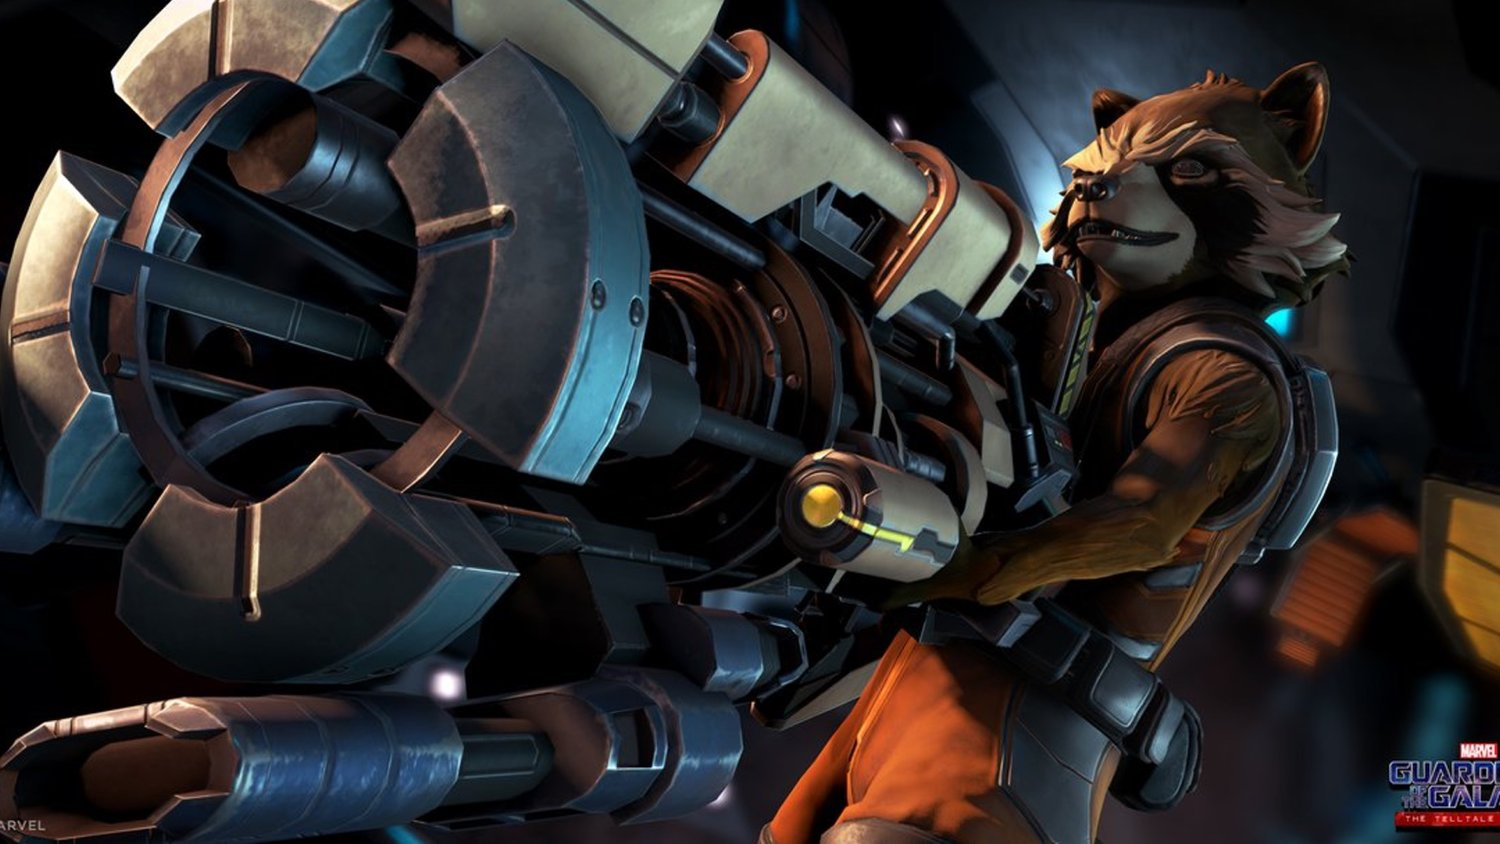 First Images, Details, and Voice Cast Revealed for Telltale's GUARDIANS OF THE GALAXY